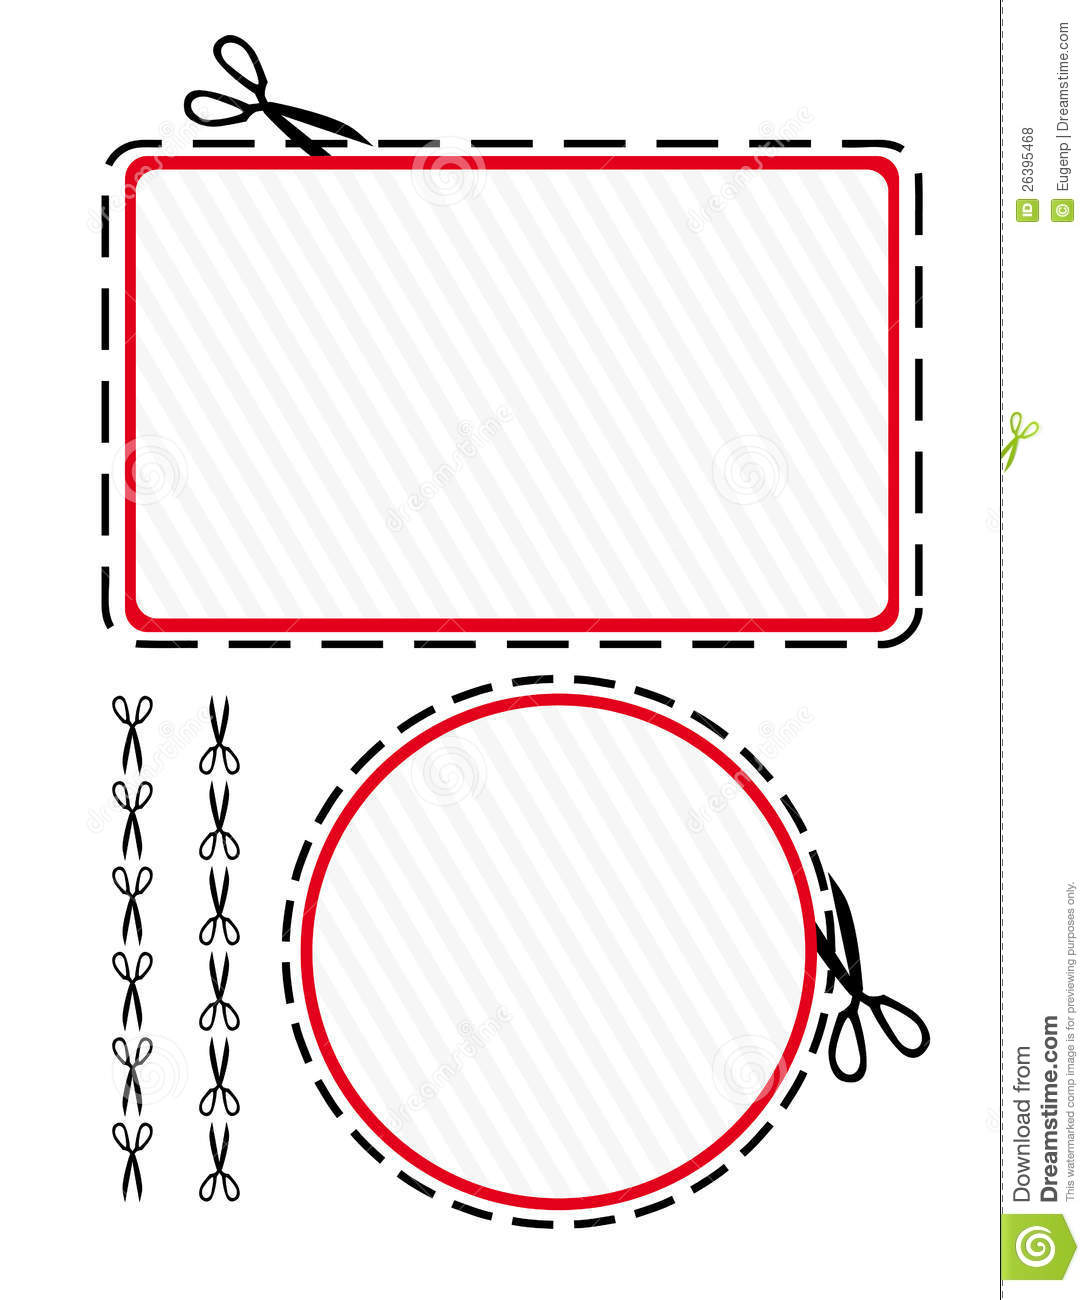 Free coupon cut outs